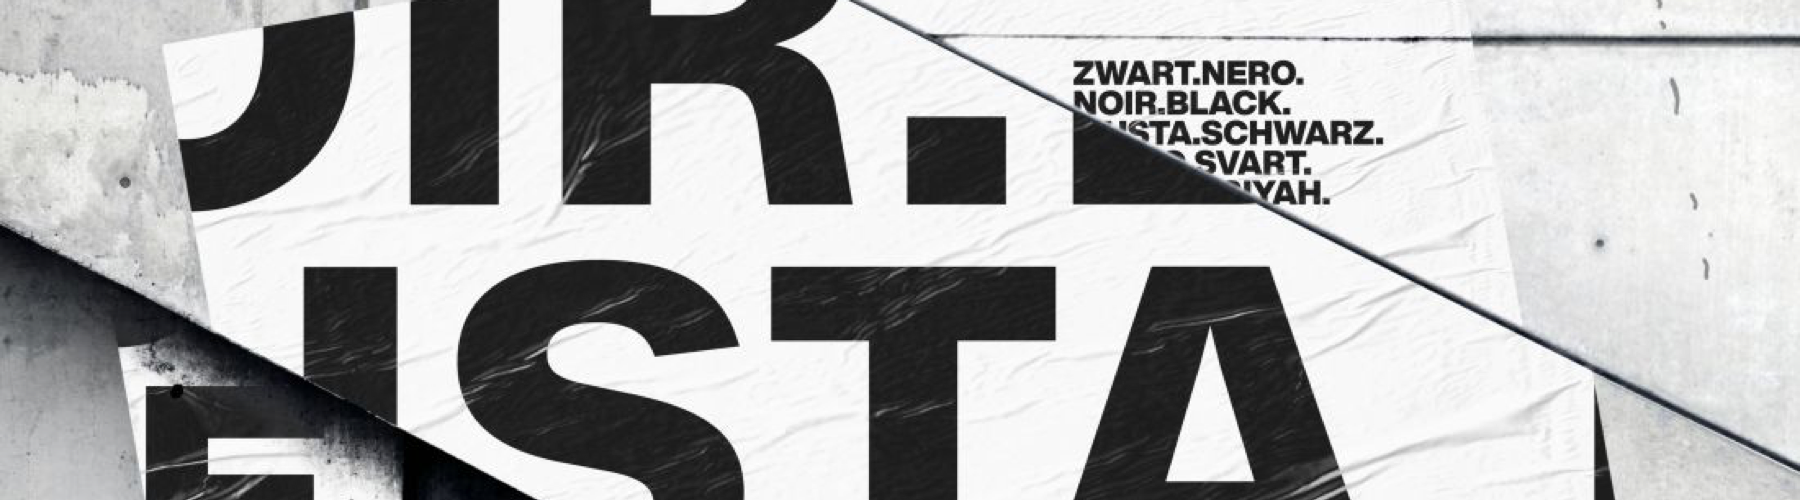 Top Fonts to Use on Posters